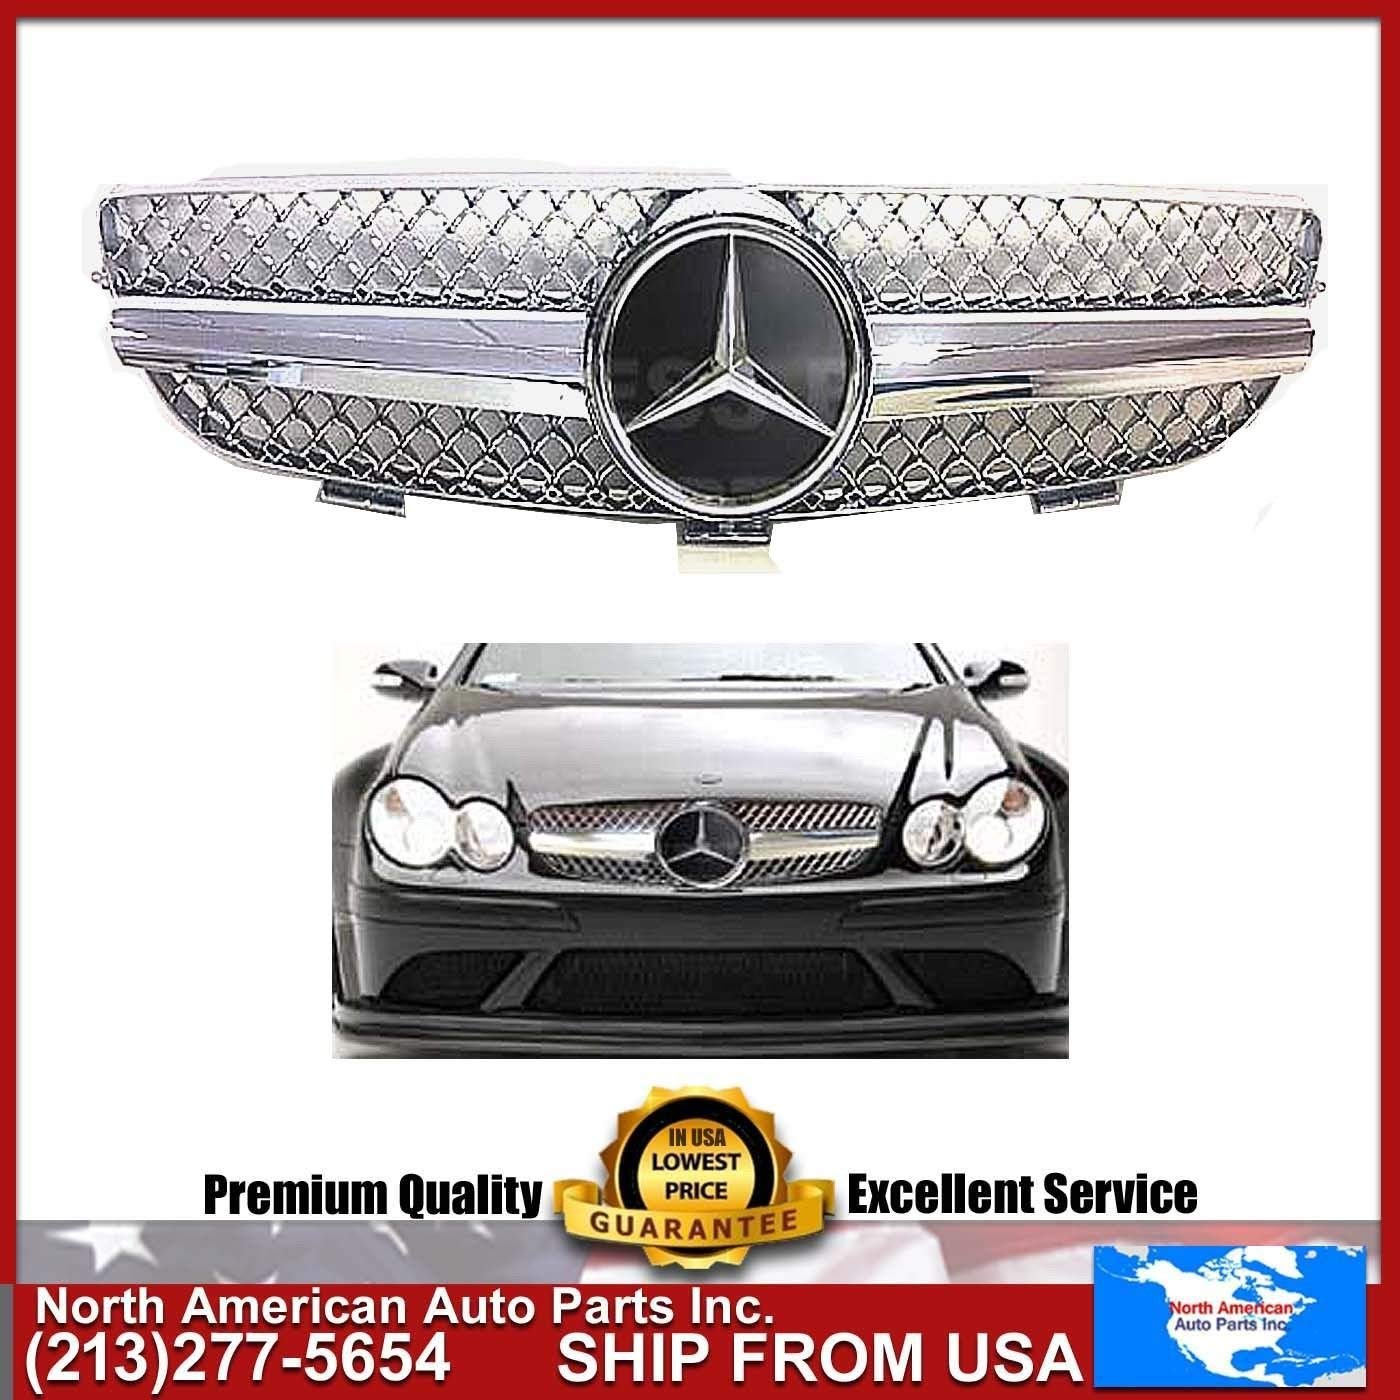 Cheap Benz Clk500 Find Deals On Line At Alibabacom Mercedes Ml270 Fuel Filter 2002 Get Quotations Clk 2003 2009 W209 Chrome Grille Amg Style With Oem Star Emblem